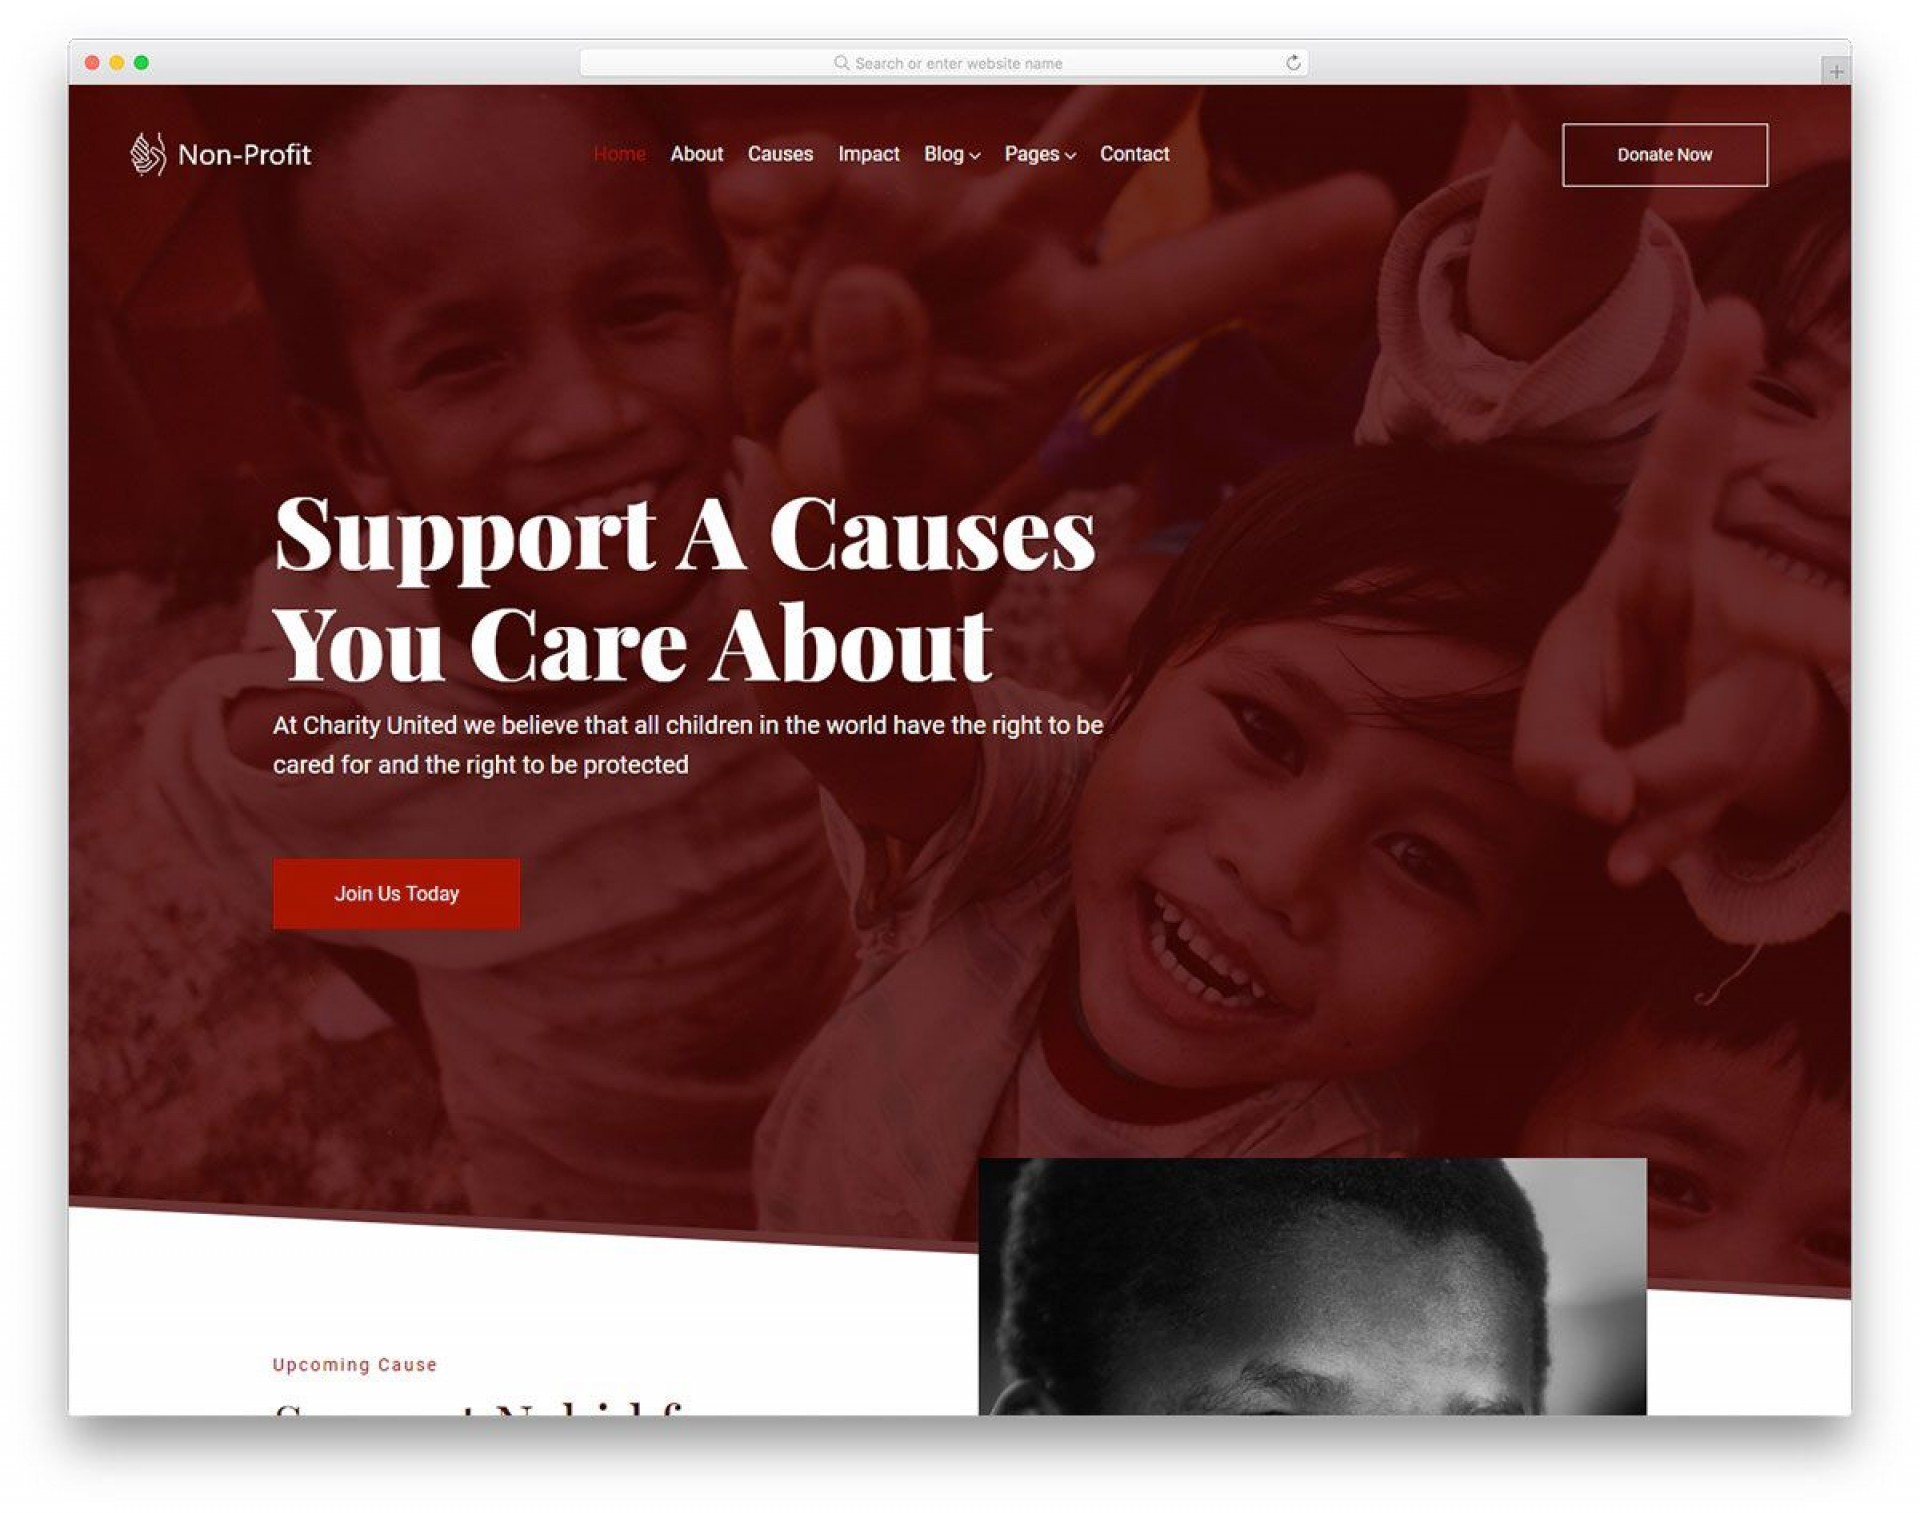 006 Shocking Free Non Profit Website Template Sample  Templates Organization Charity1920